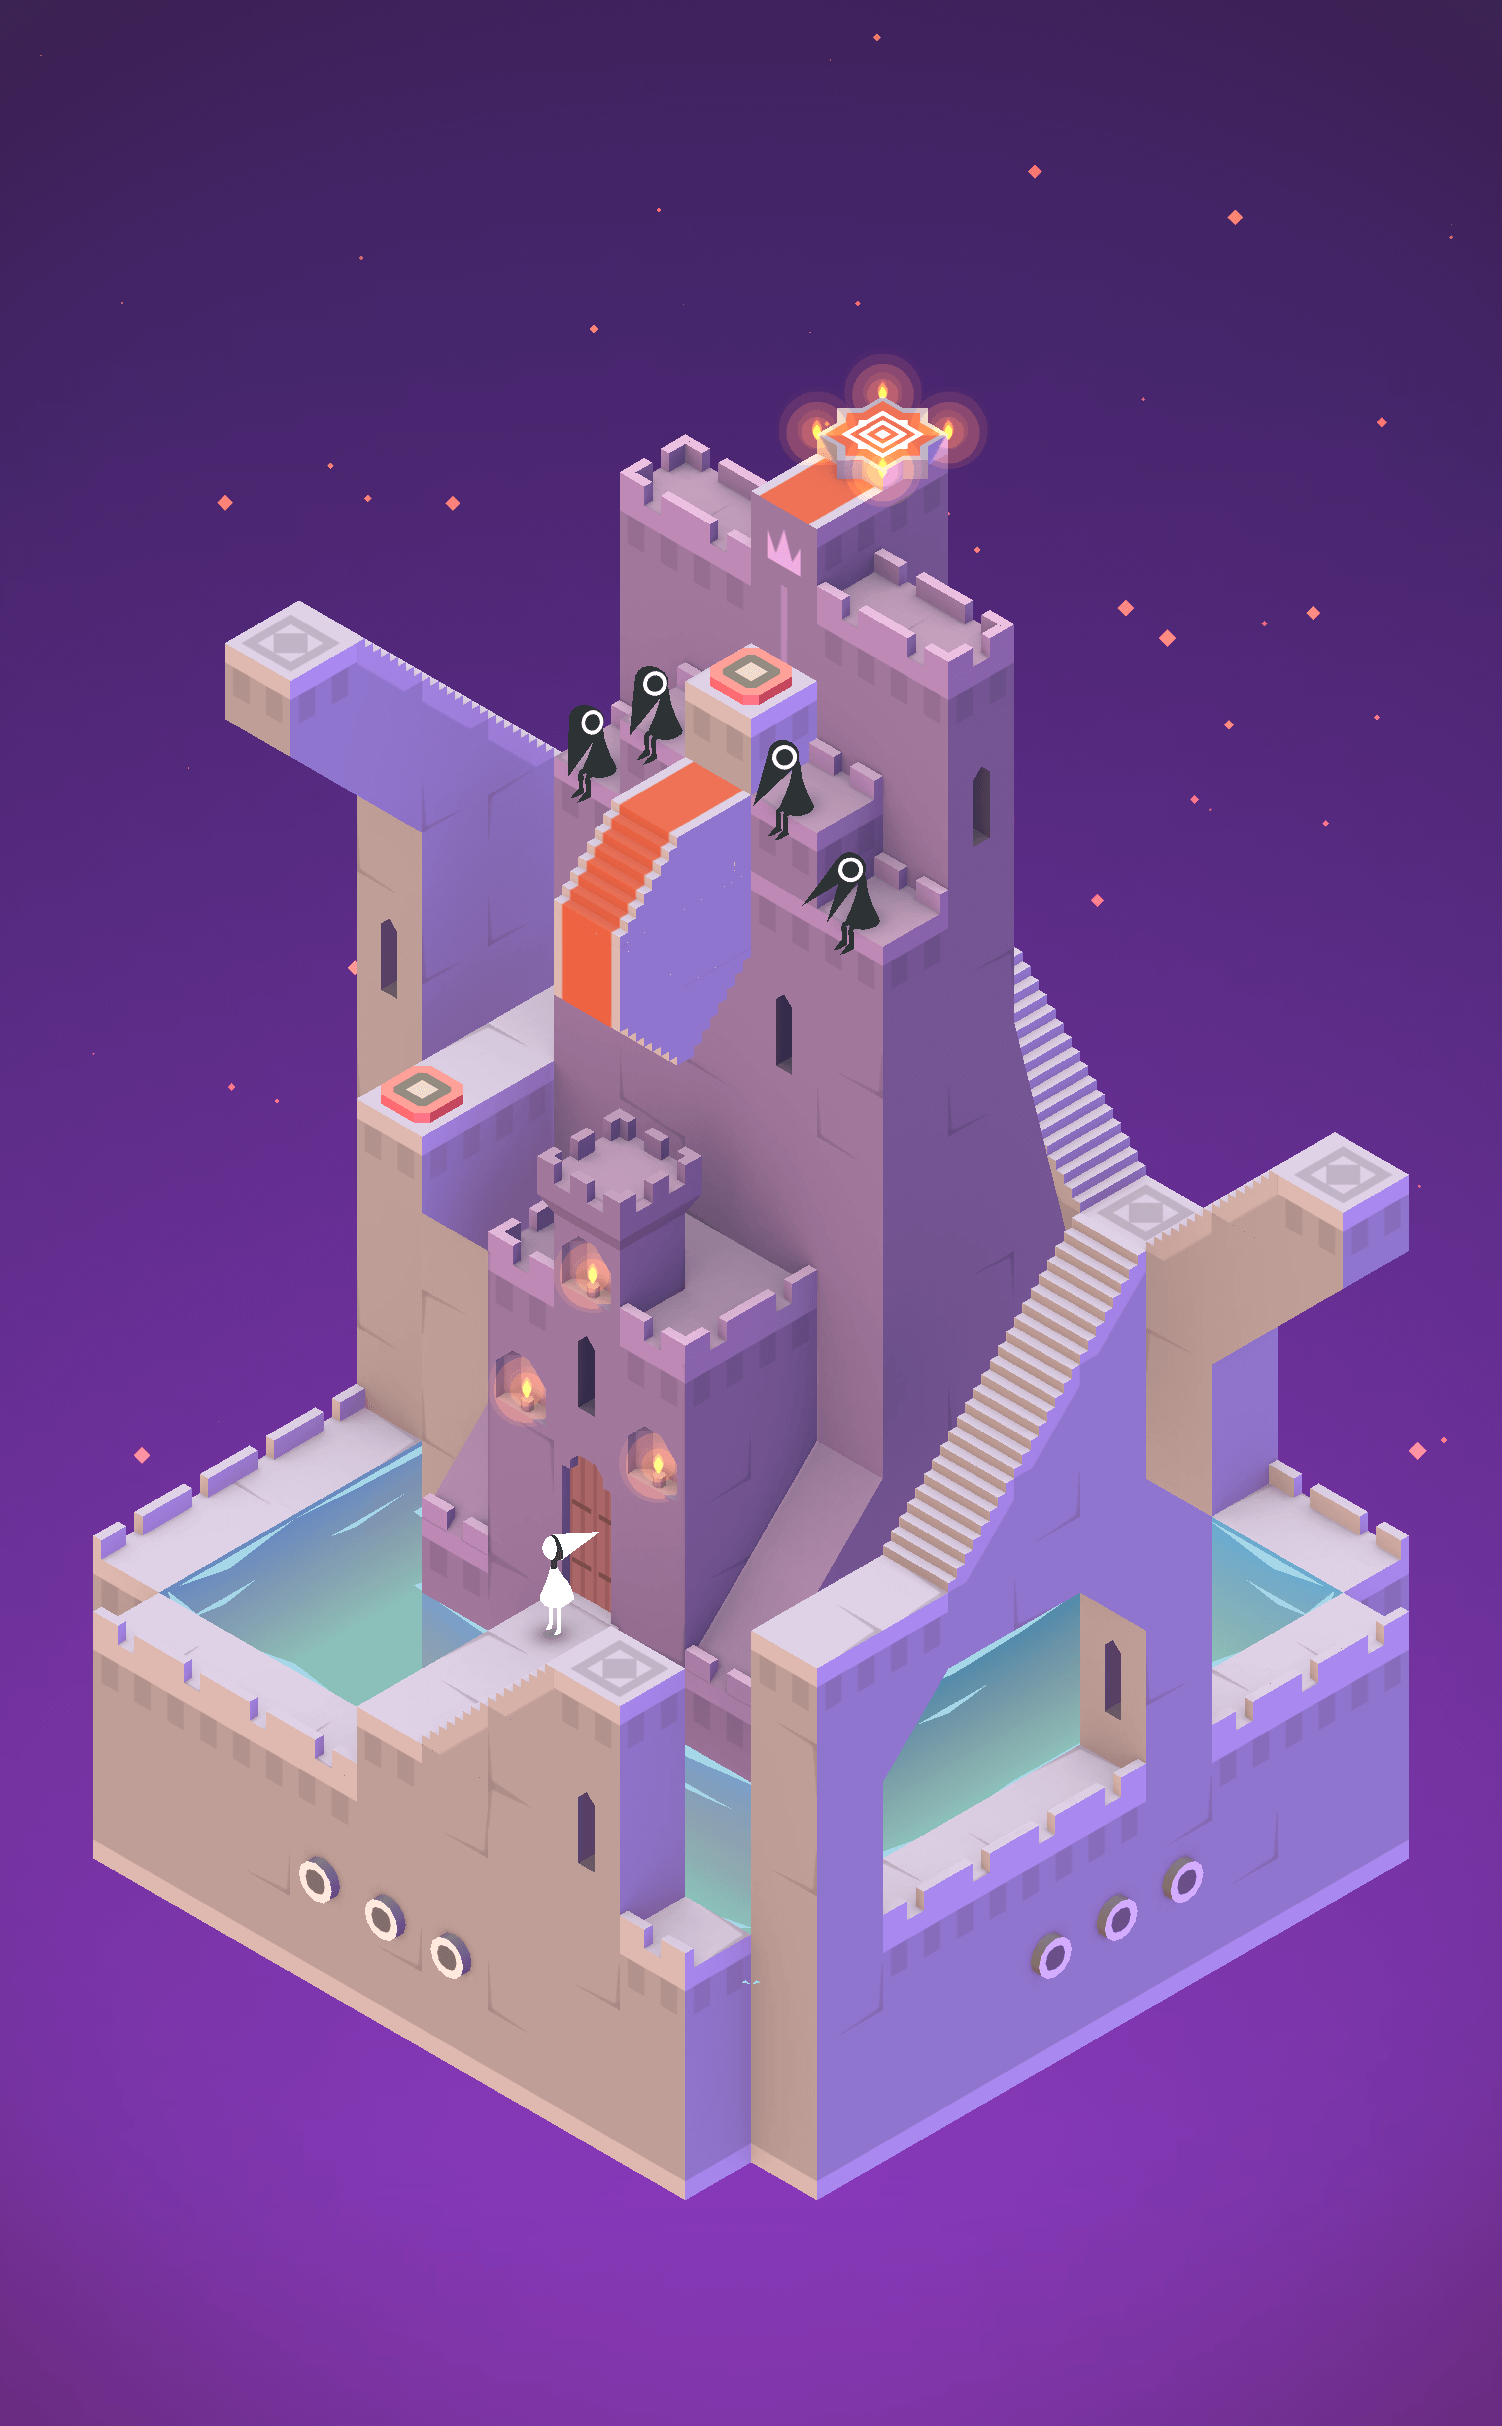 http://wayswework.io/assets/img/interviewphotos/MonumentValley3.png